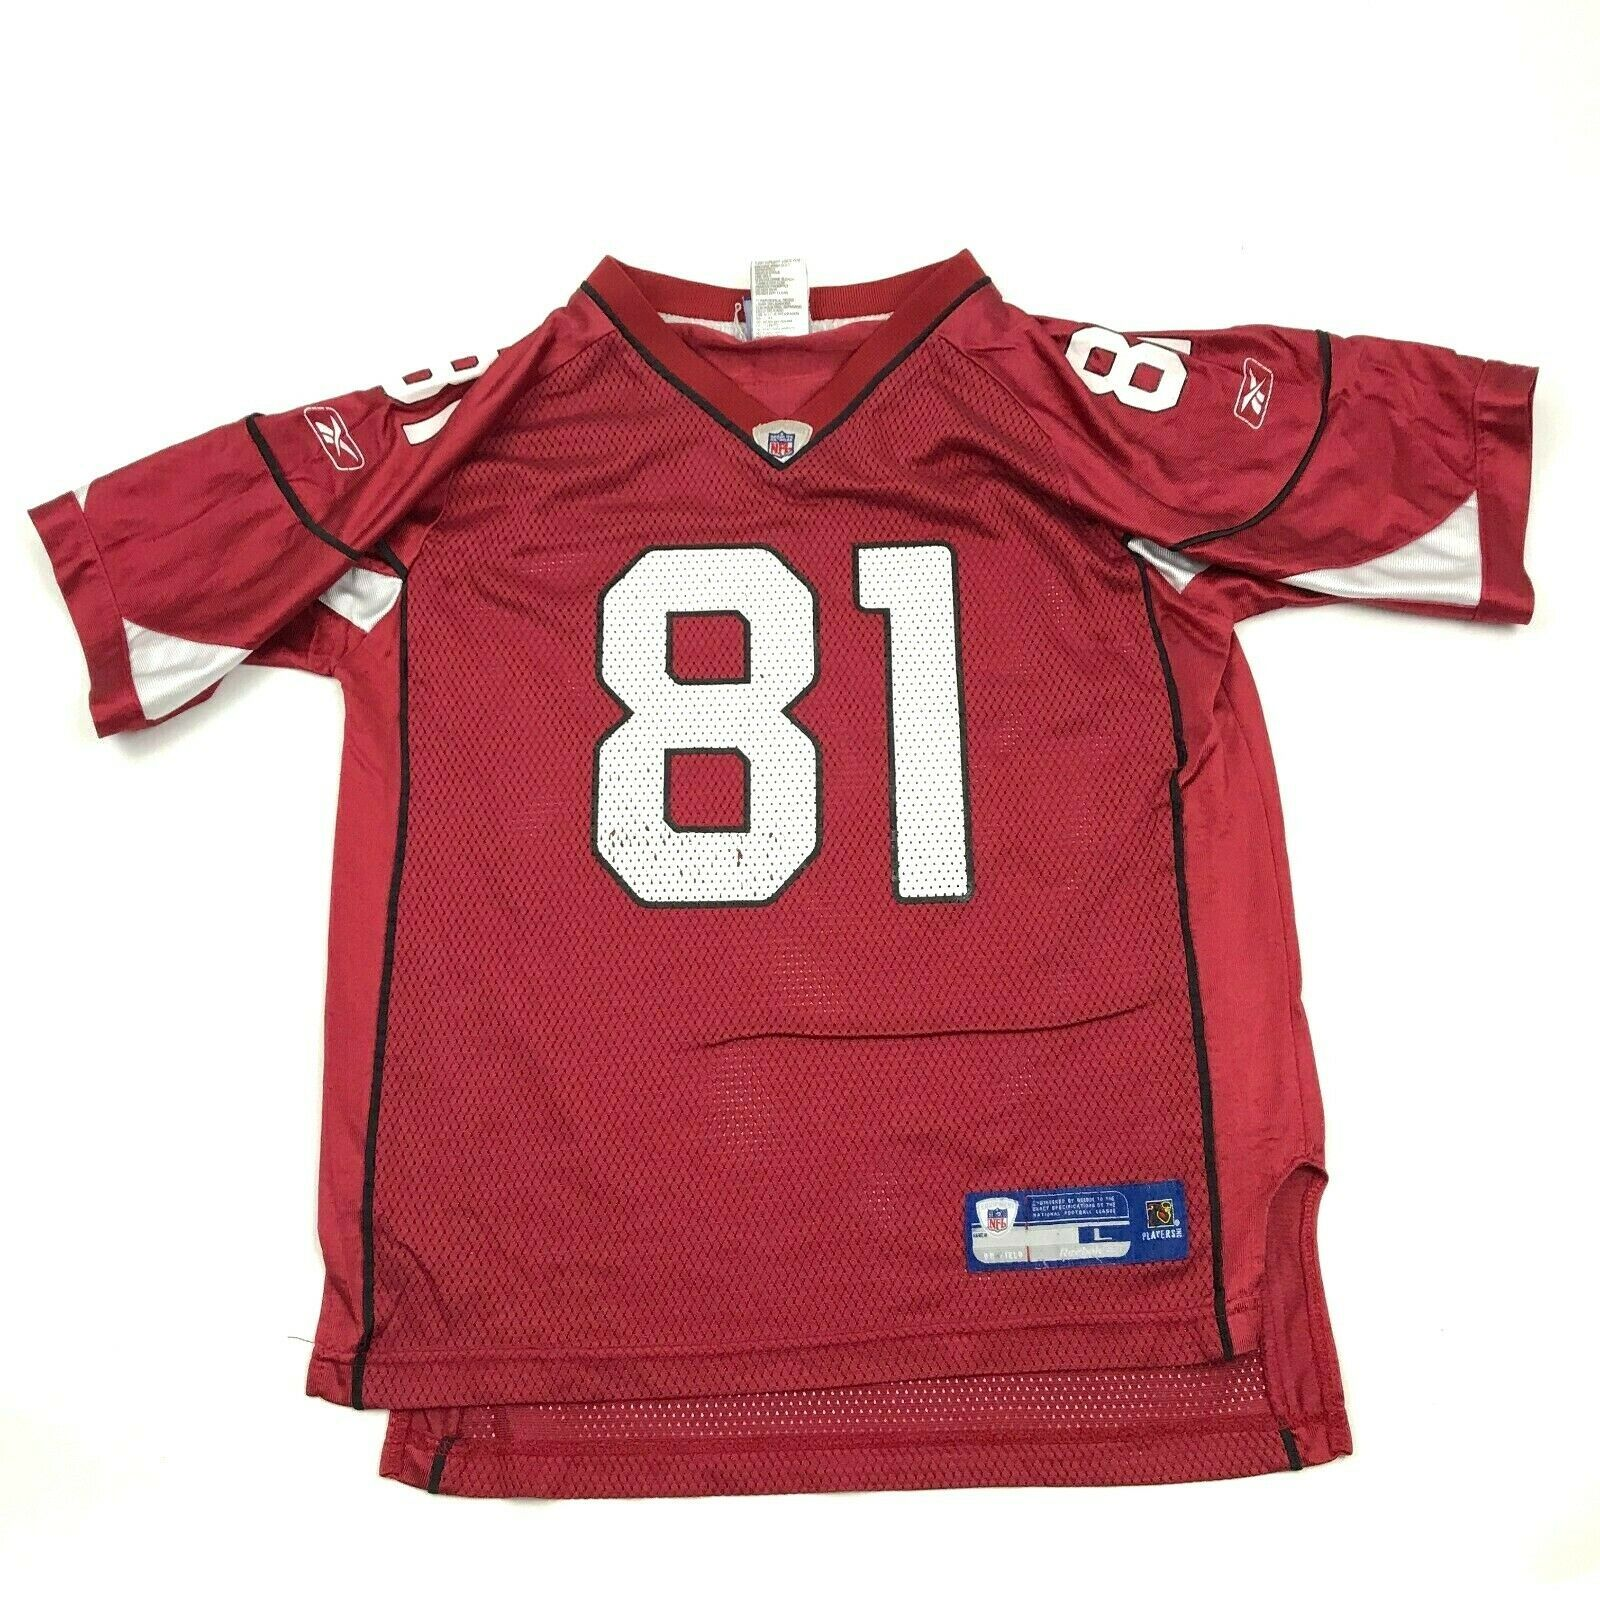 Primary image for Vintage Reebok Anquan Boldin Arizona Cardinaux Football Jersey Garçons Taille L